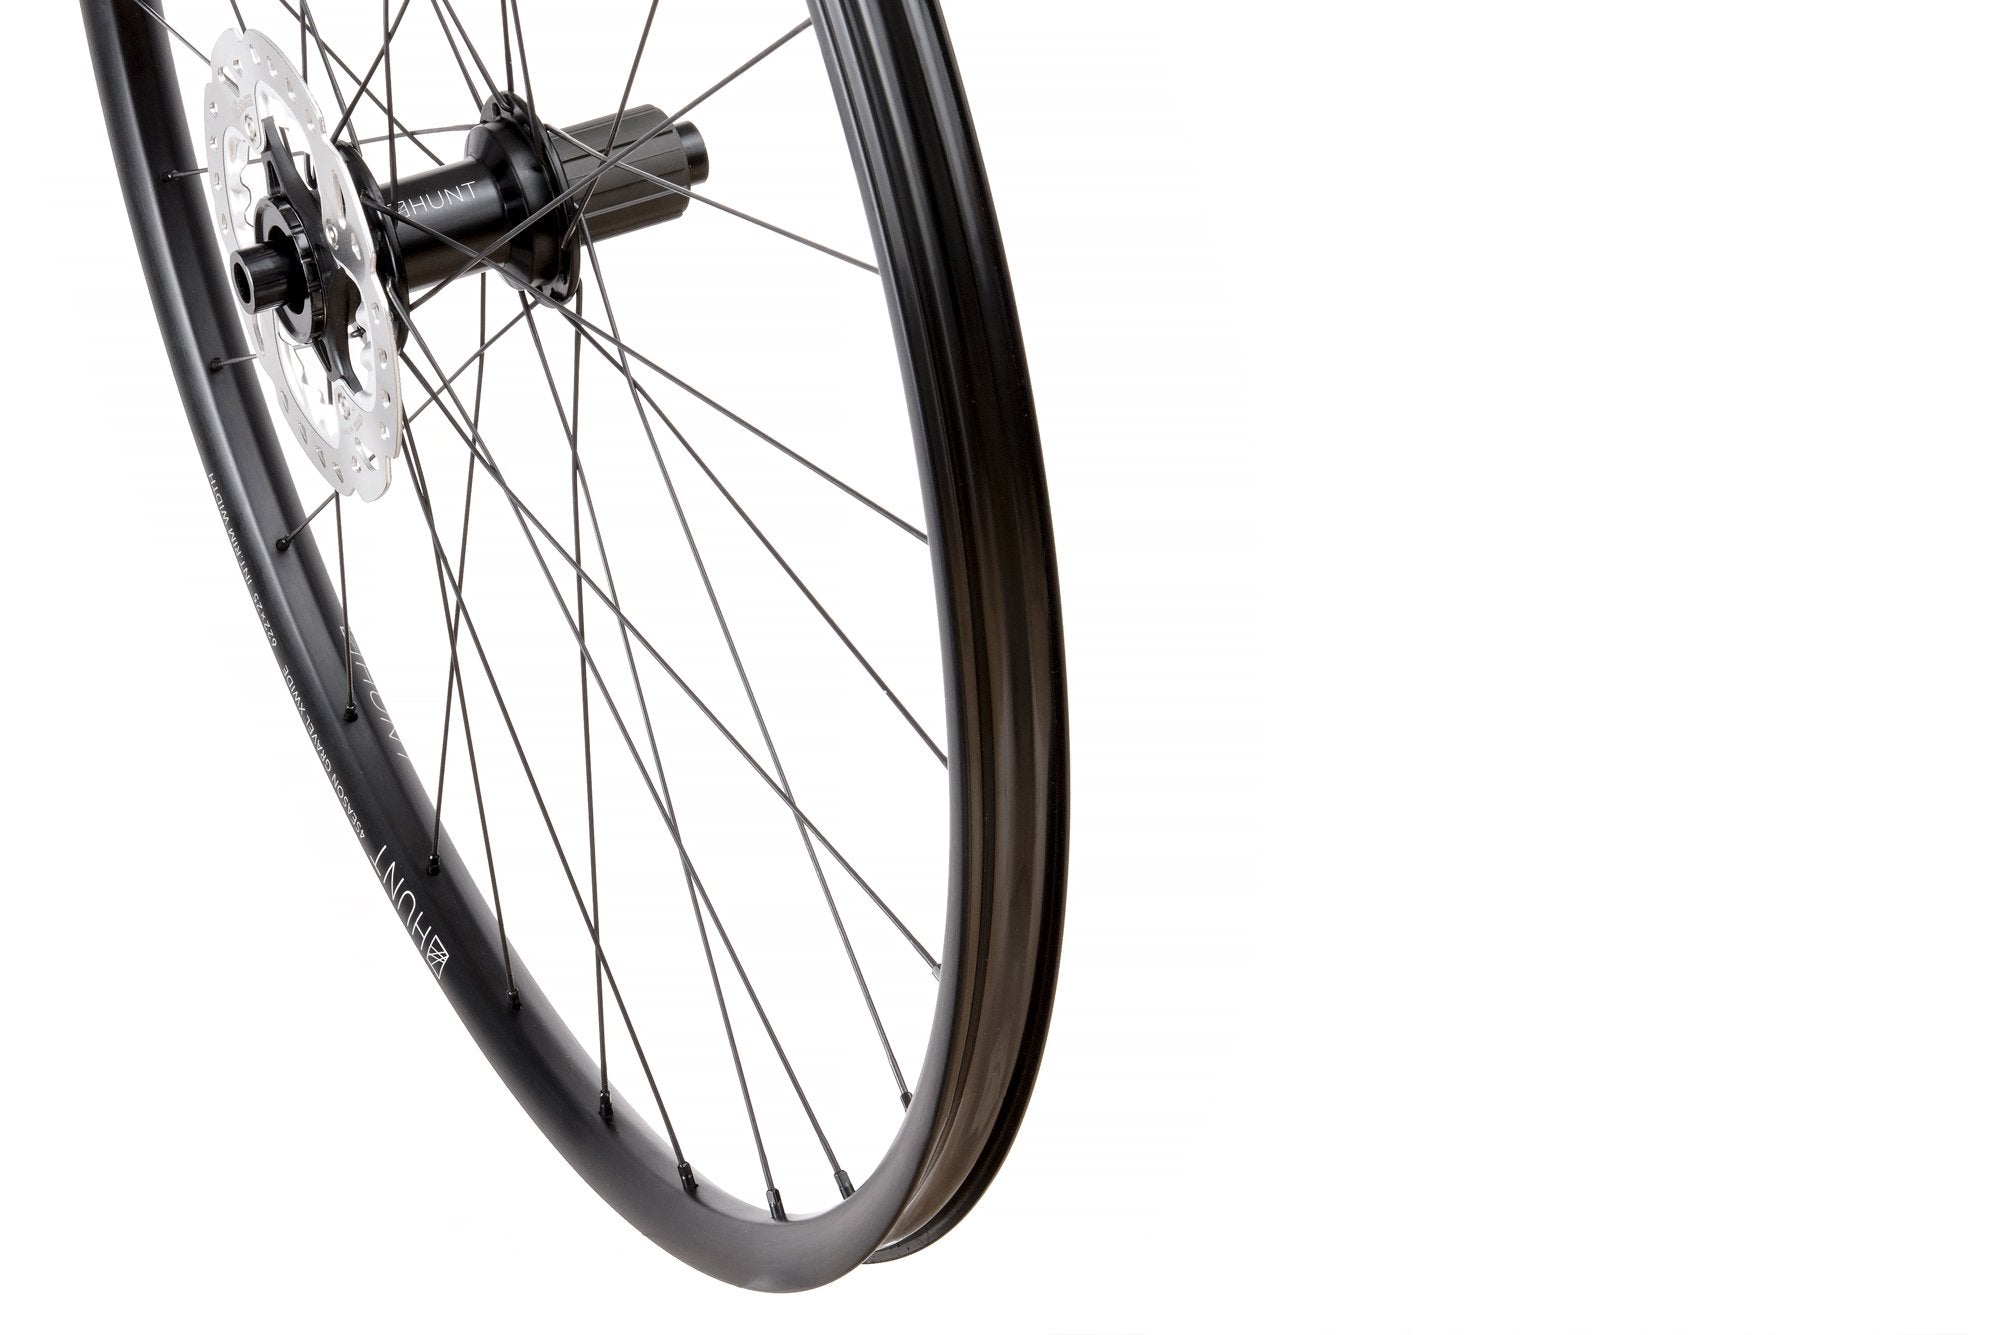 Nearly New HUNT 4 Season Gravel Disc X-Wide Wheelset